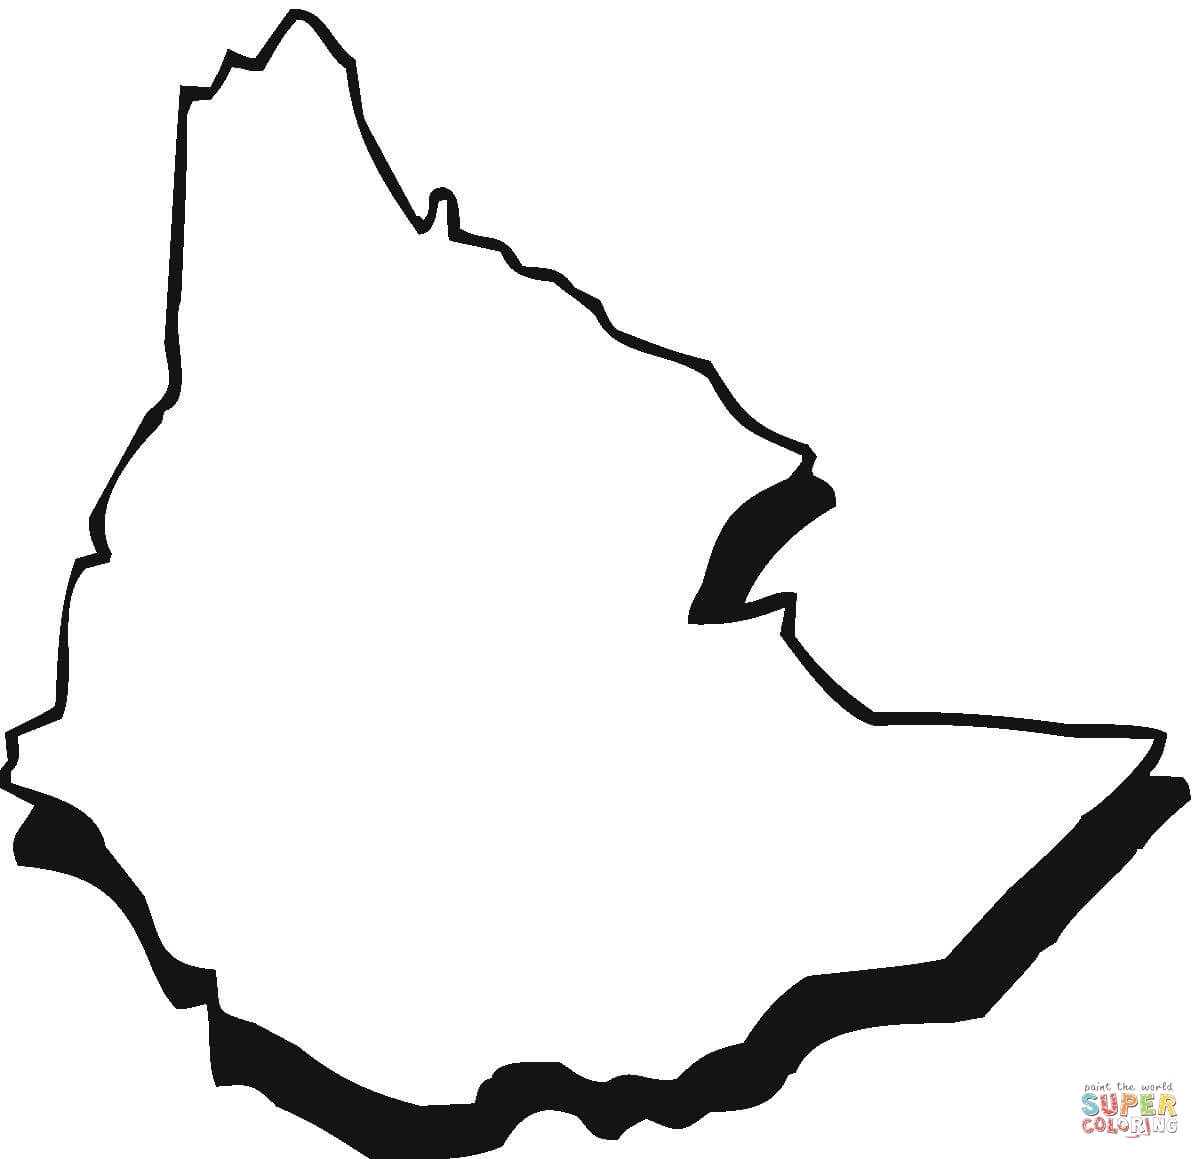 Africa Map Silhouette At Getdrawings Com Free For Personal Use